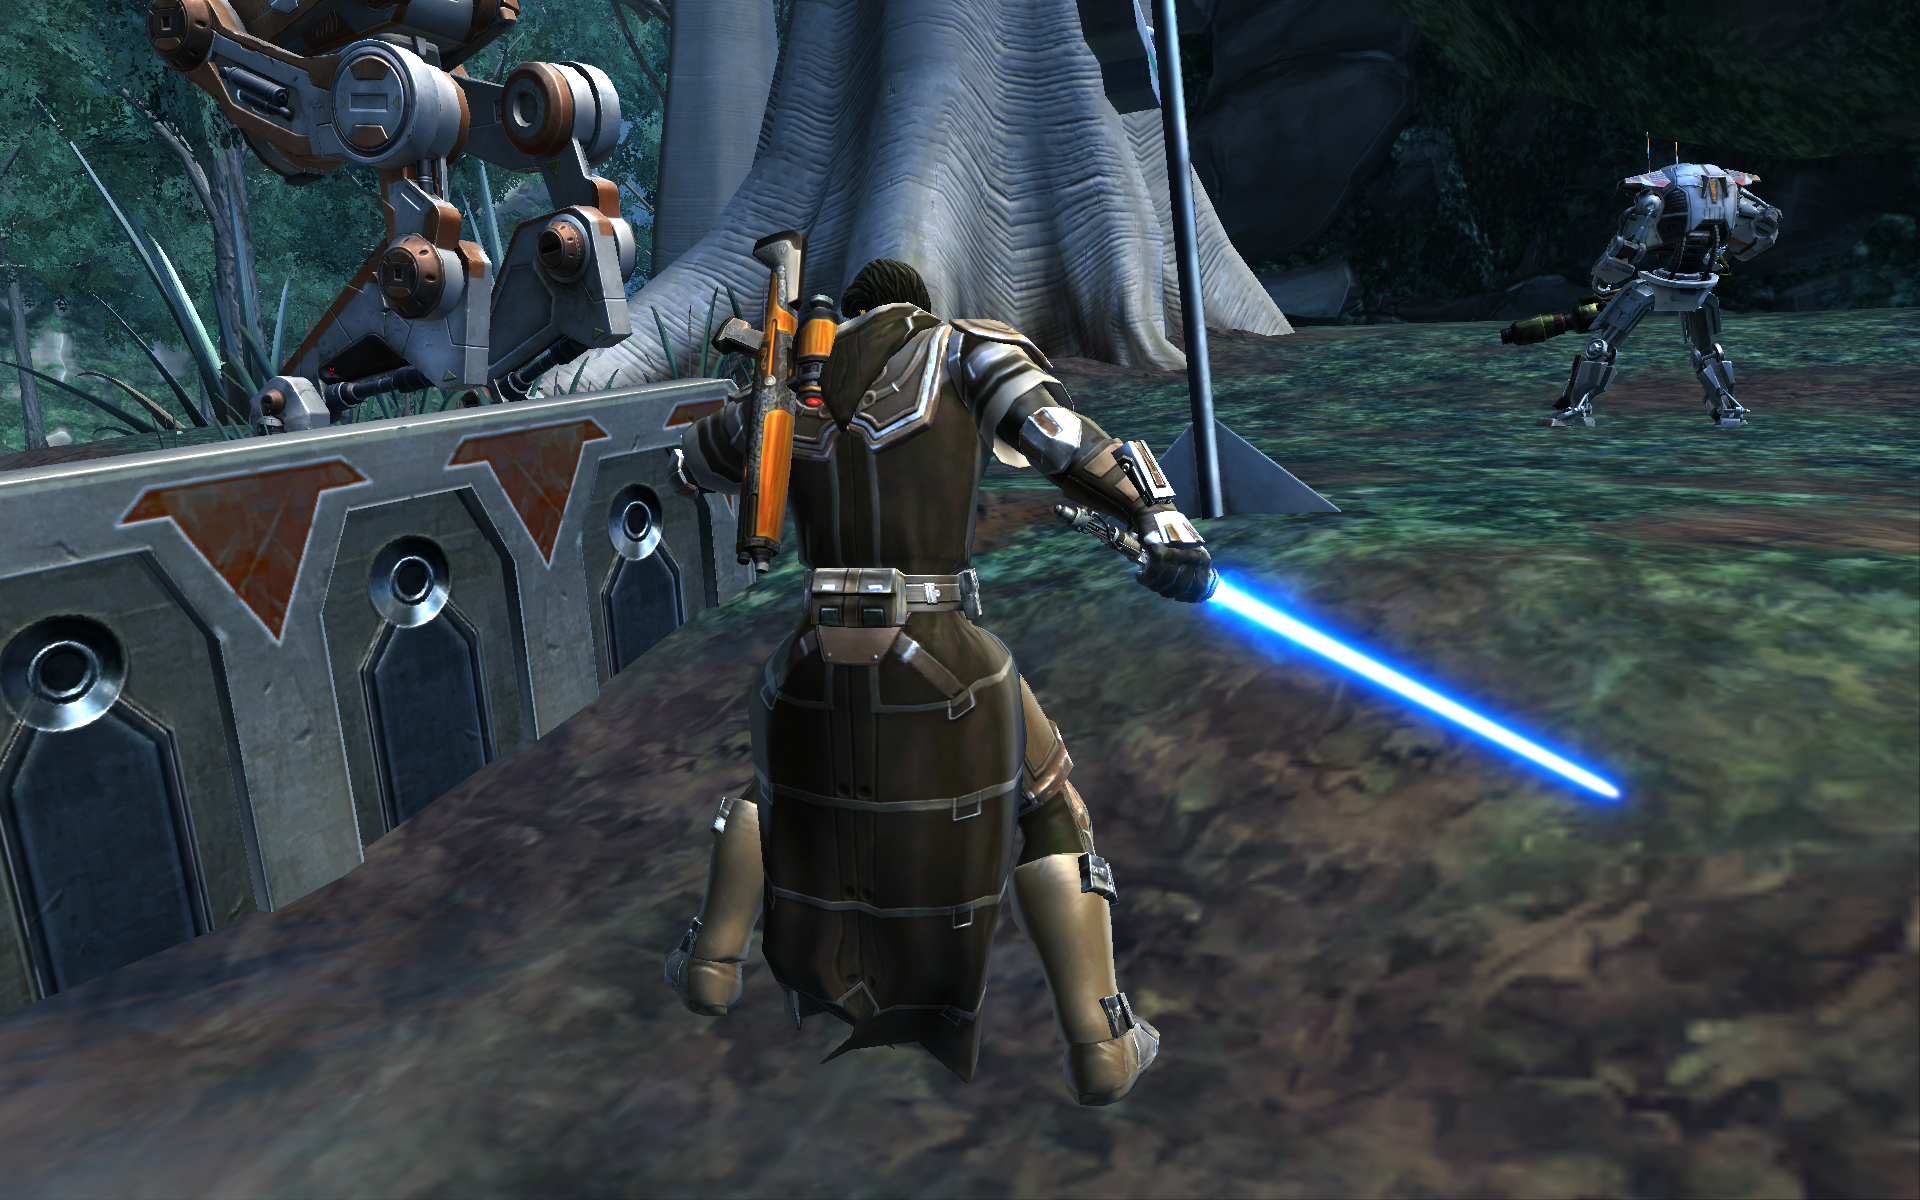 Jedi on Yavin IV have resorted to using uncivilized weapons it seems